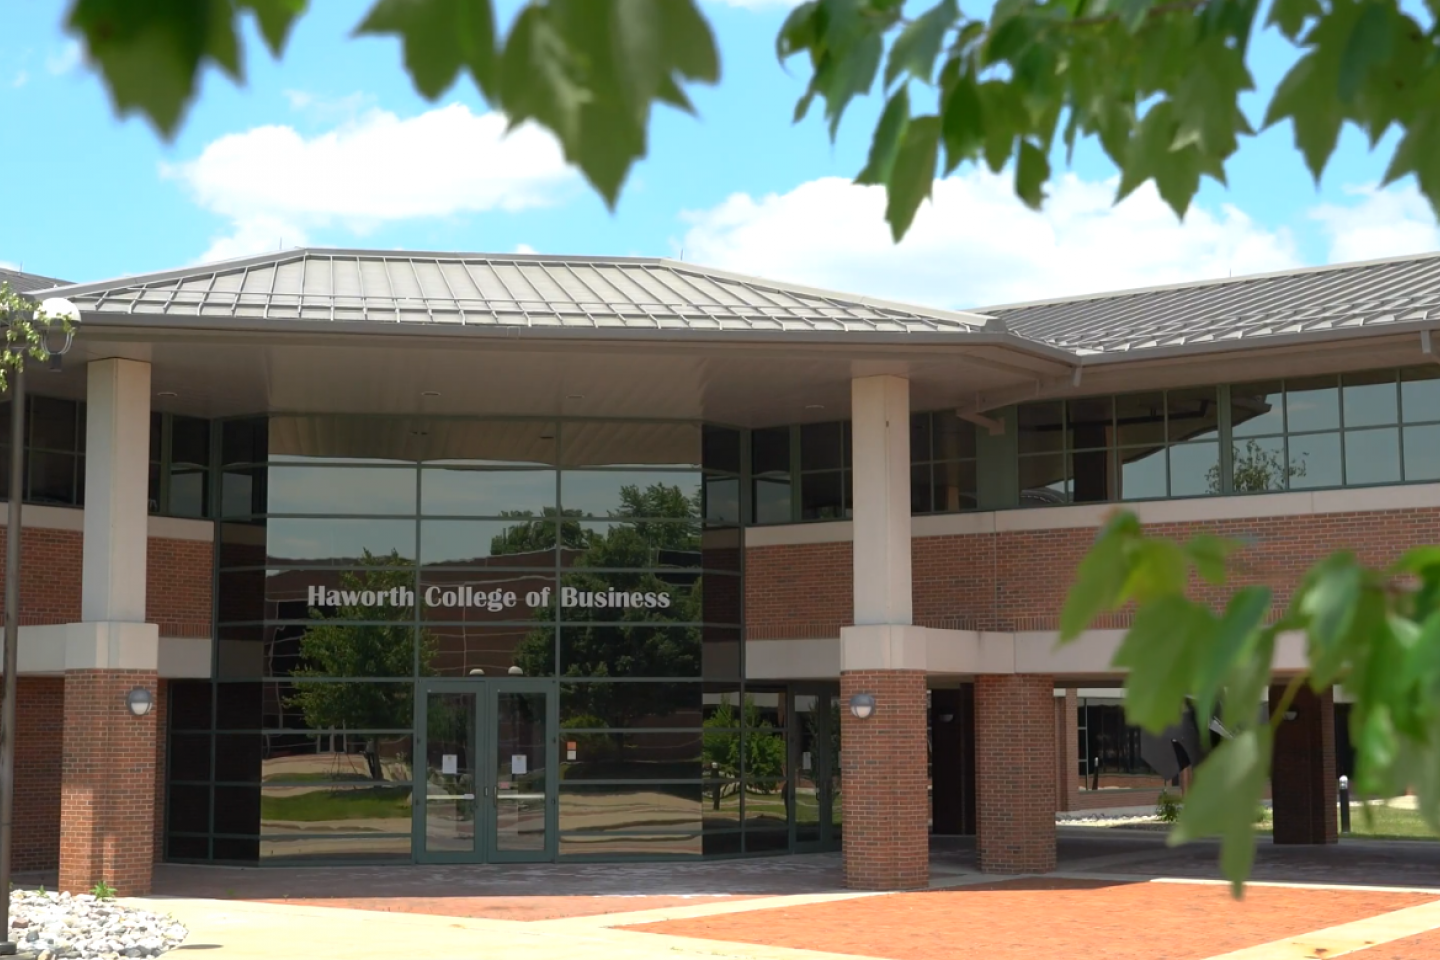 Photo of the Haworth College of Business.